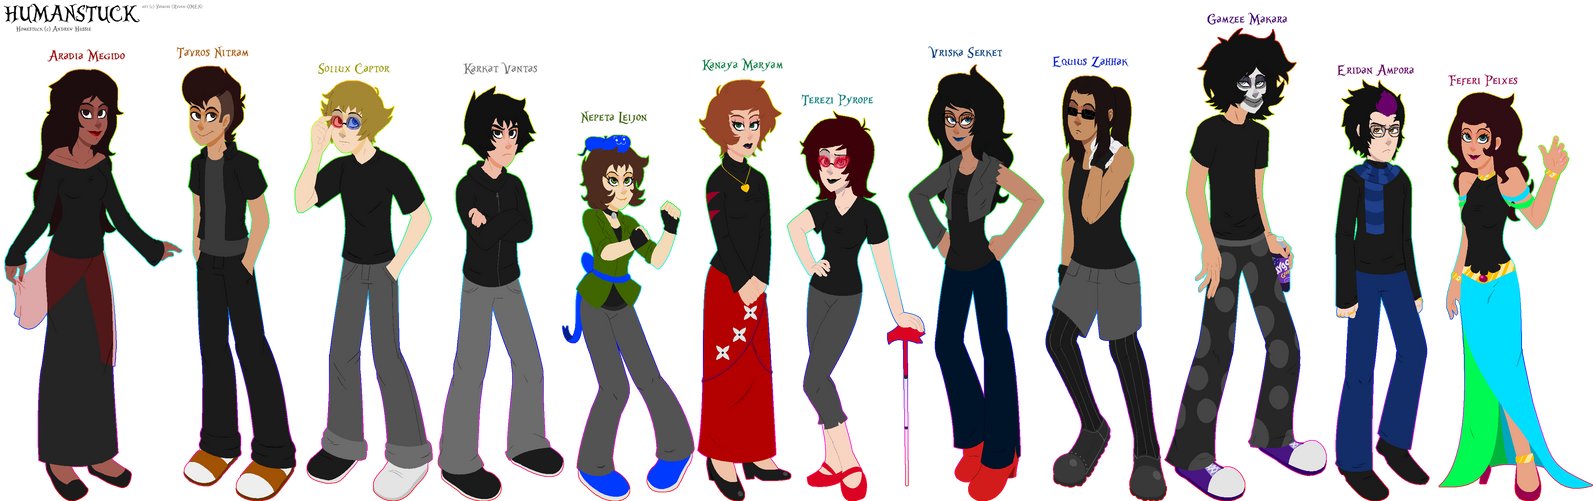 HC Humanstuck Trolls Download For Full View By Yazzy